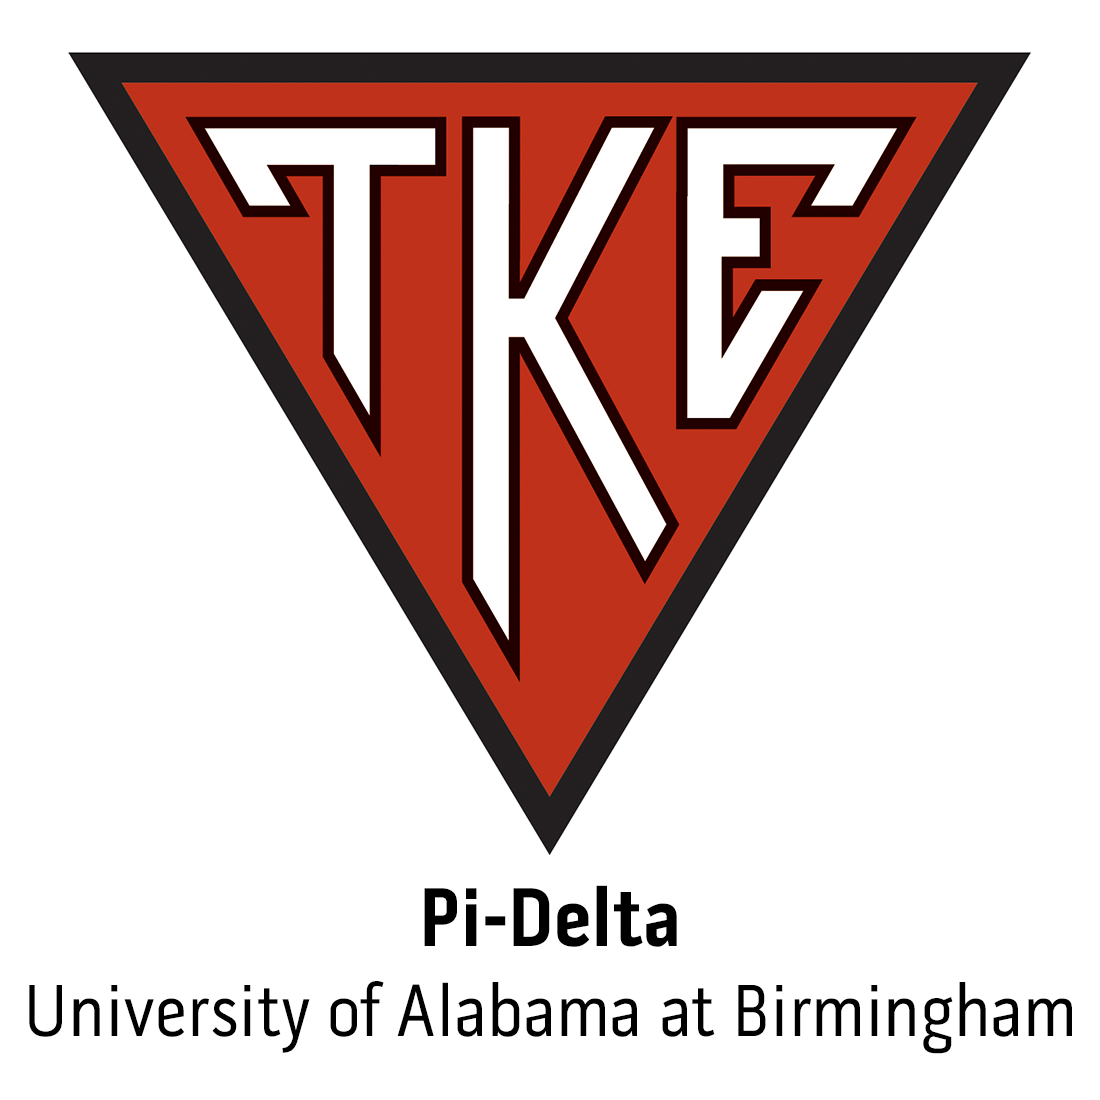 Pi-Delta Chapter at University of Alabama at Birmingham